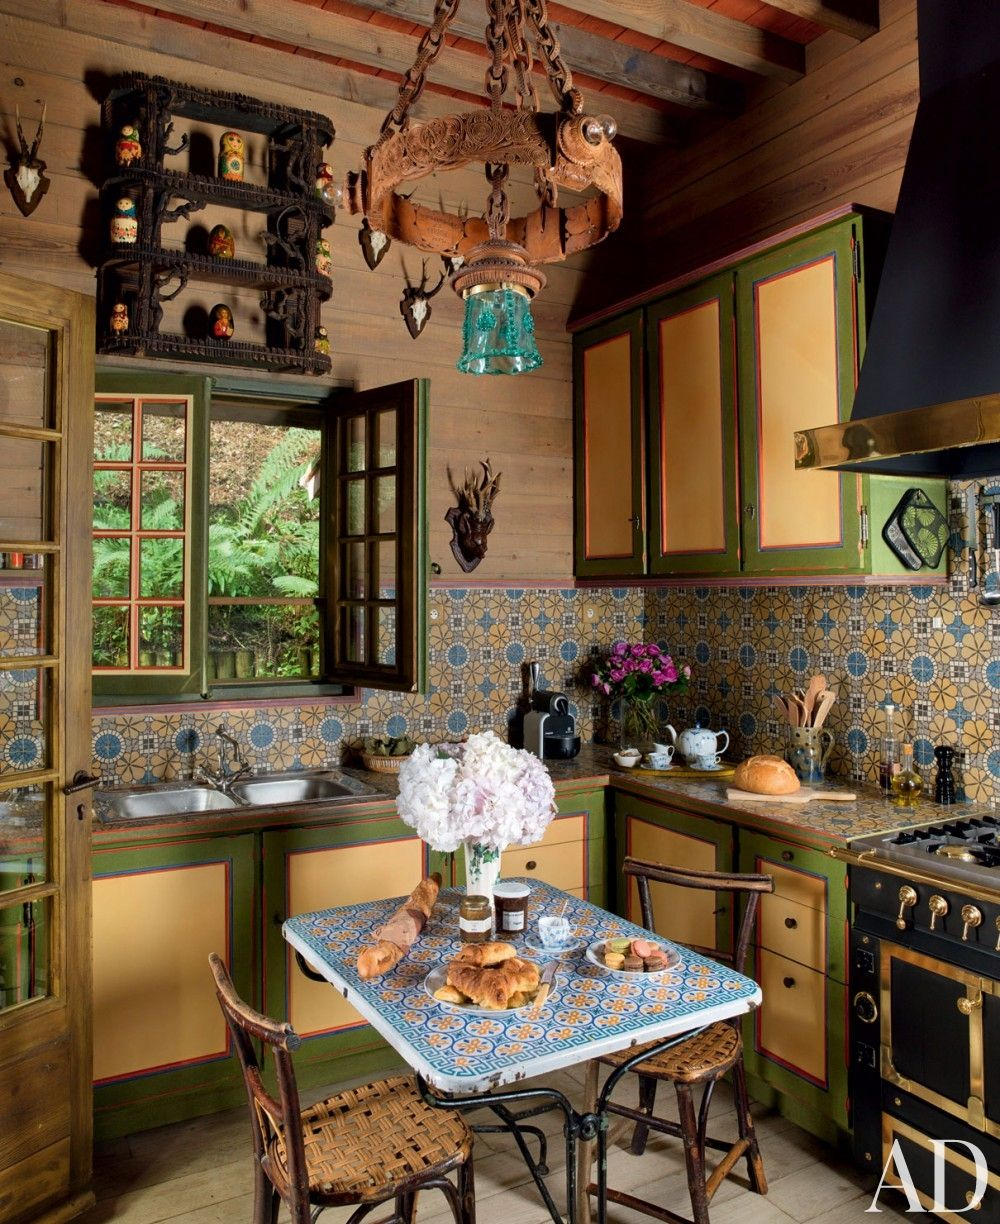 Meubles Grange France Exotic Kitchen By Jacques Grange And Jacques Grange In Normandy